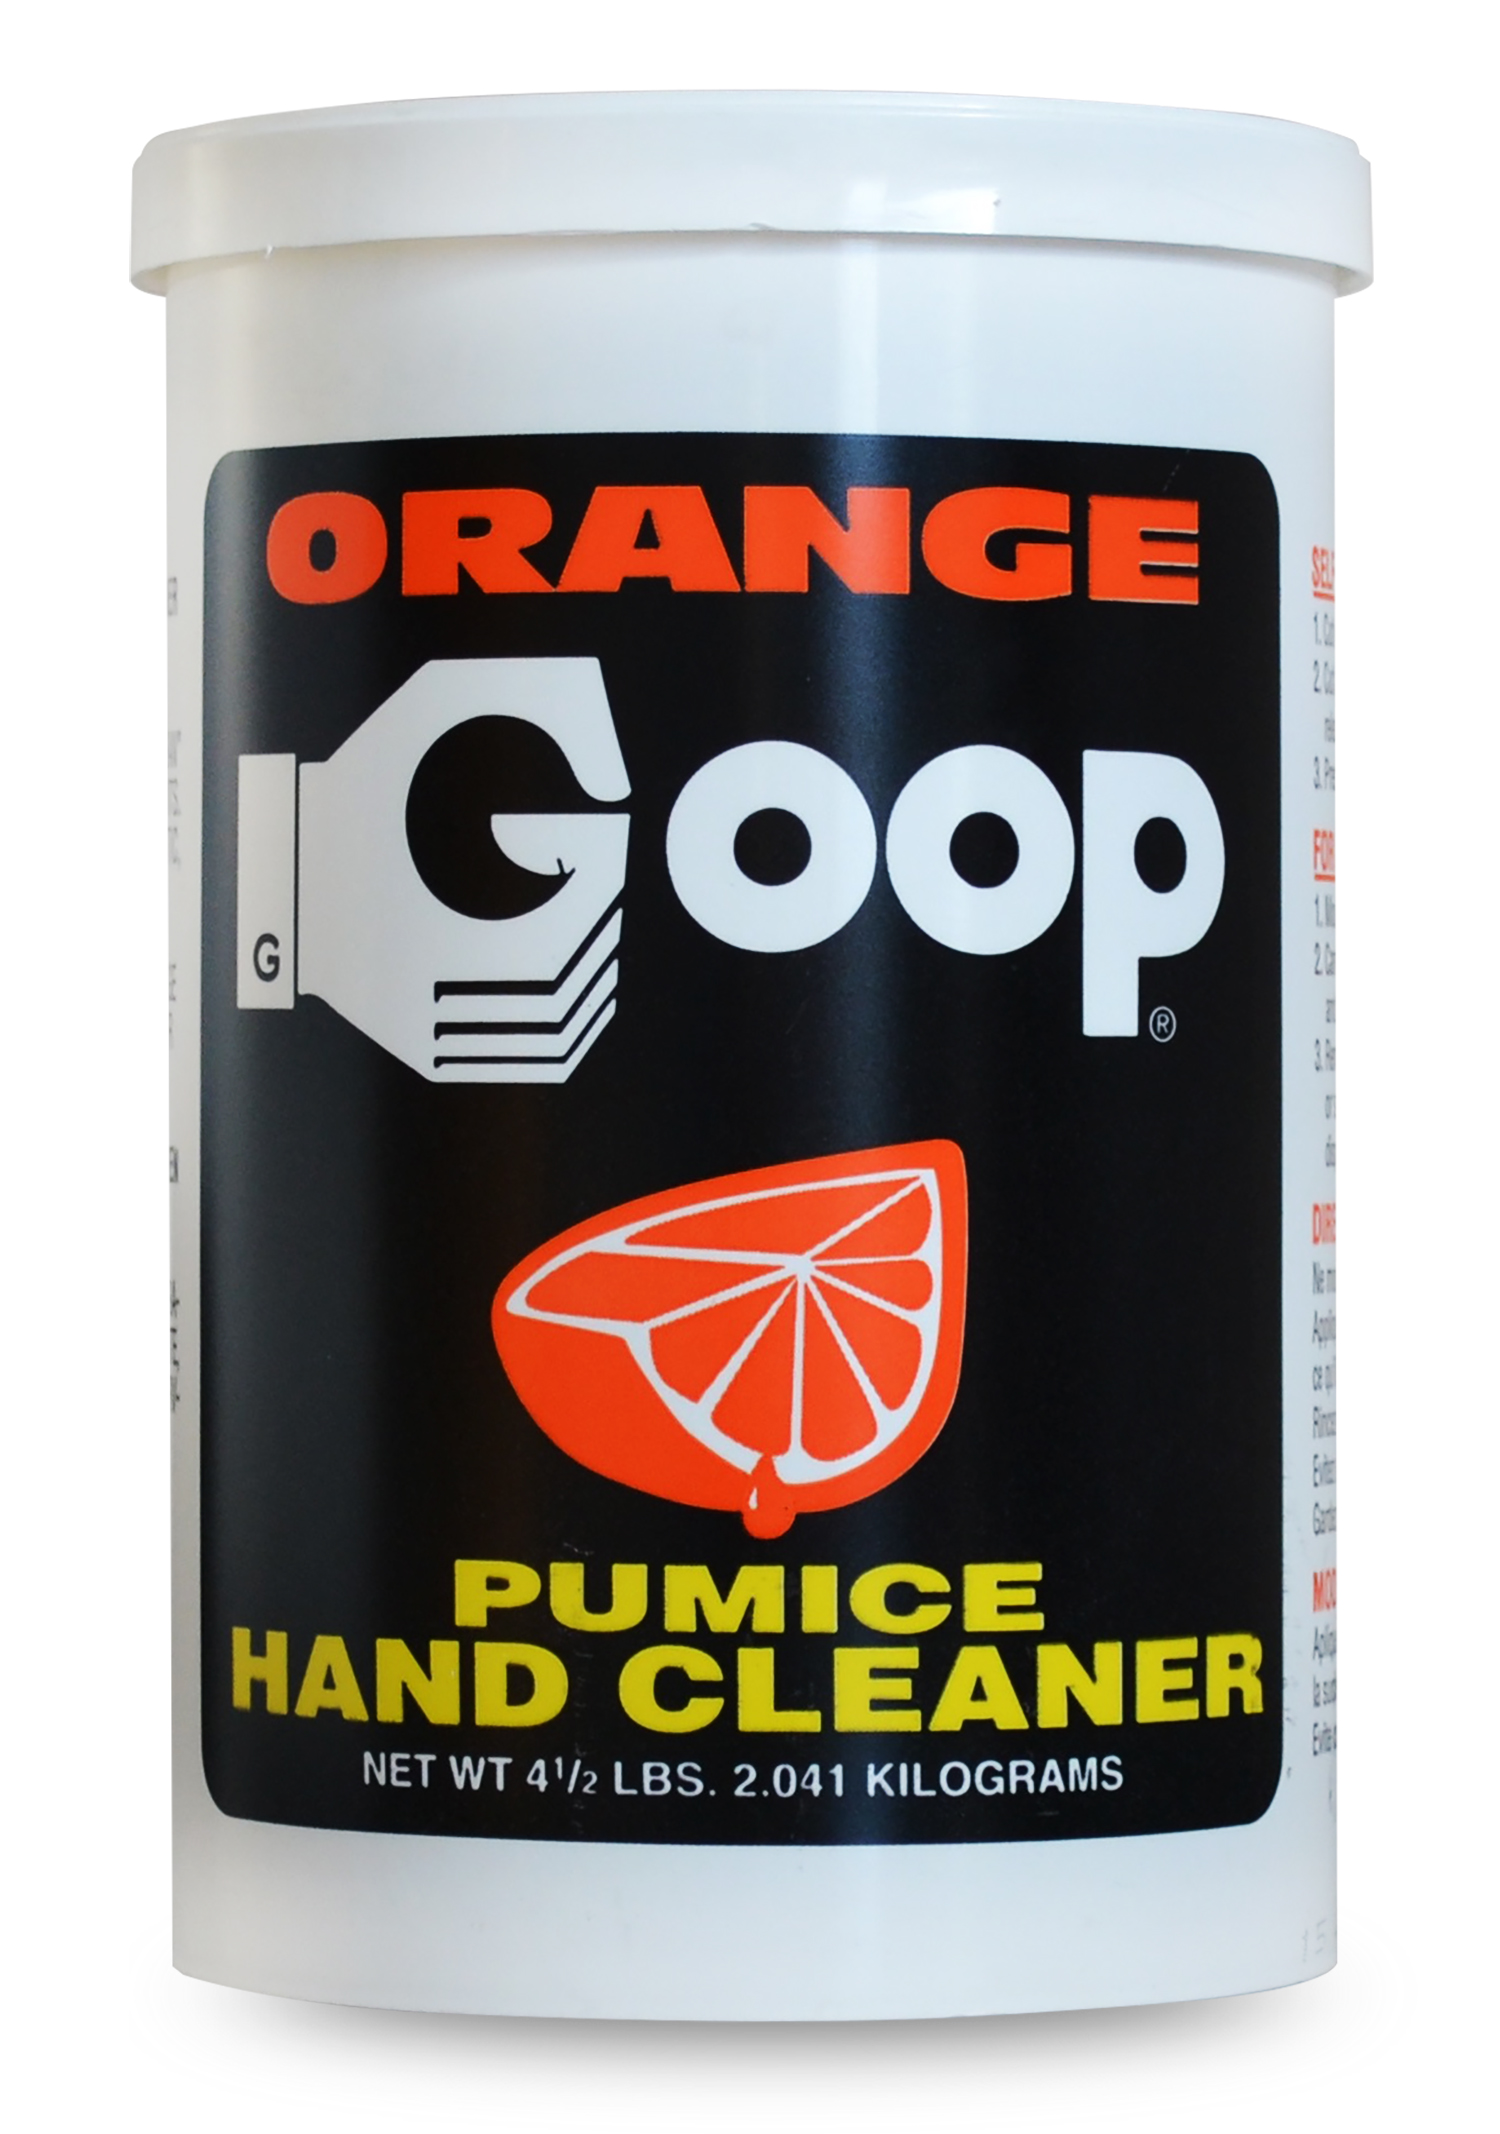 Moms-Goop-Orange-606-Pumice4_5lbs.jpg